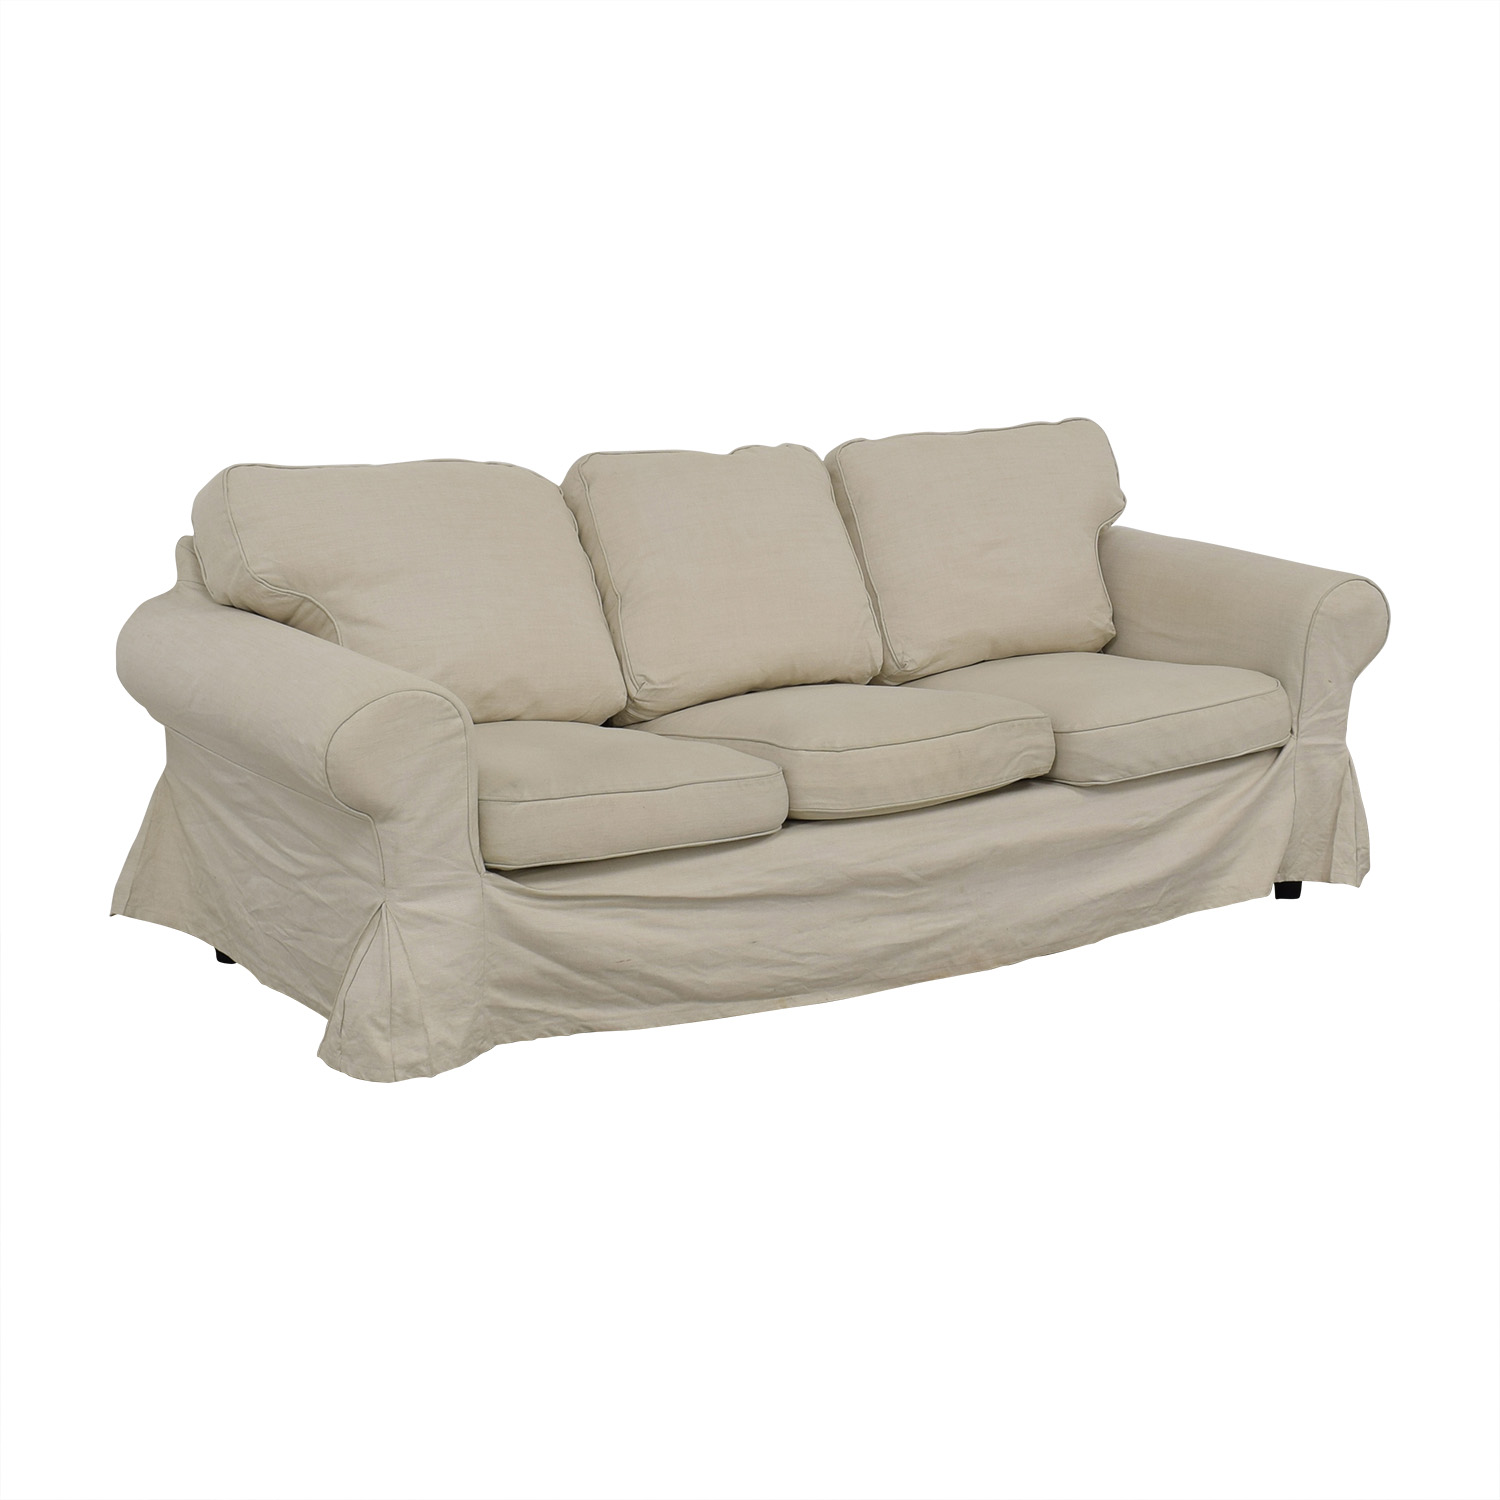 shop IKEA IKEA Ektorp Lofallet Beige Three-Cushion Sofa online